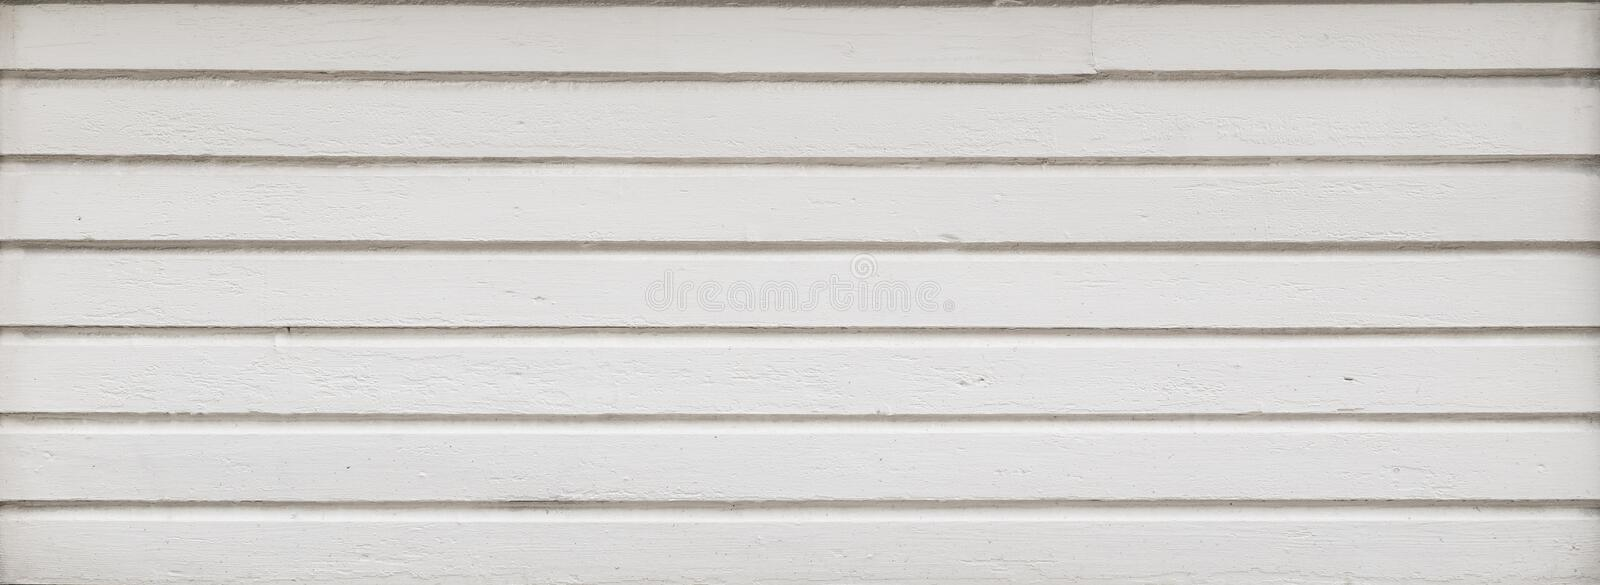 Clean wood board wall in white. Full frame background of a clean wood board wall painted in white. Copy space stock photography